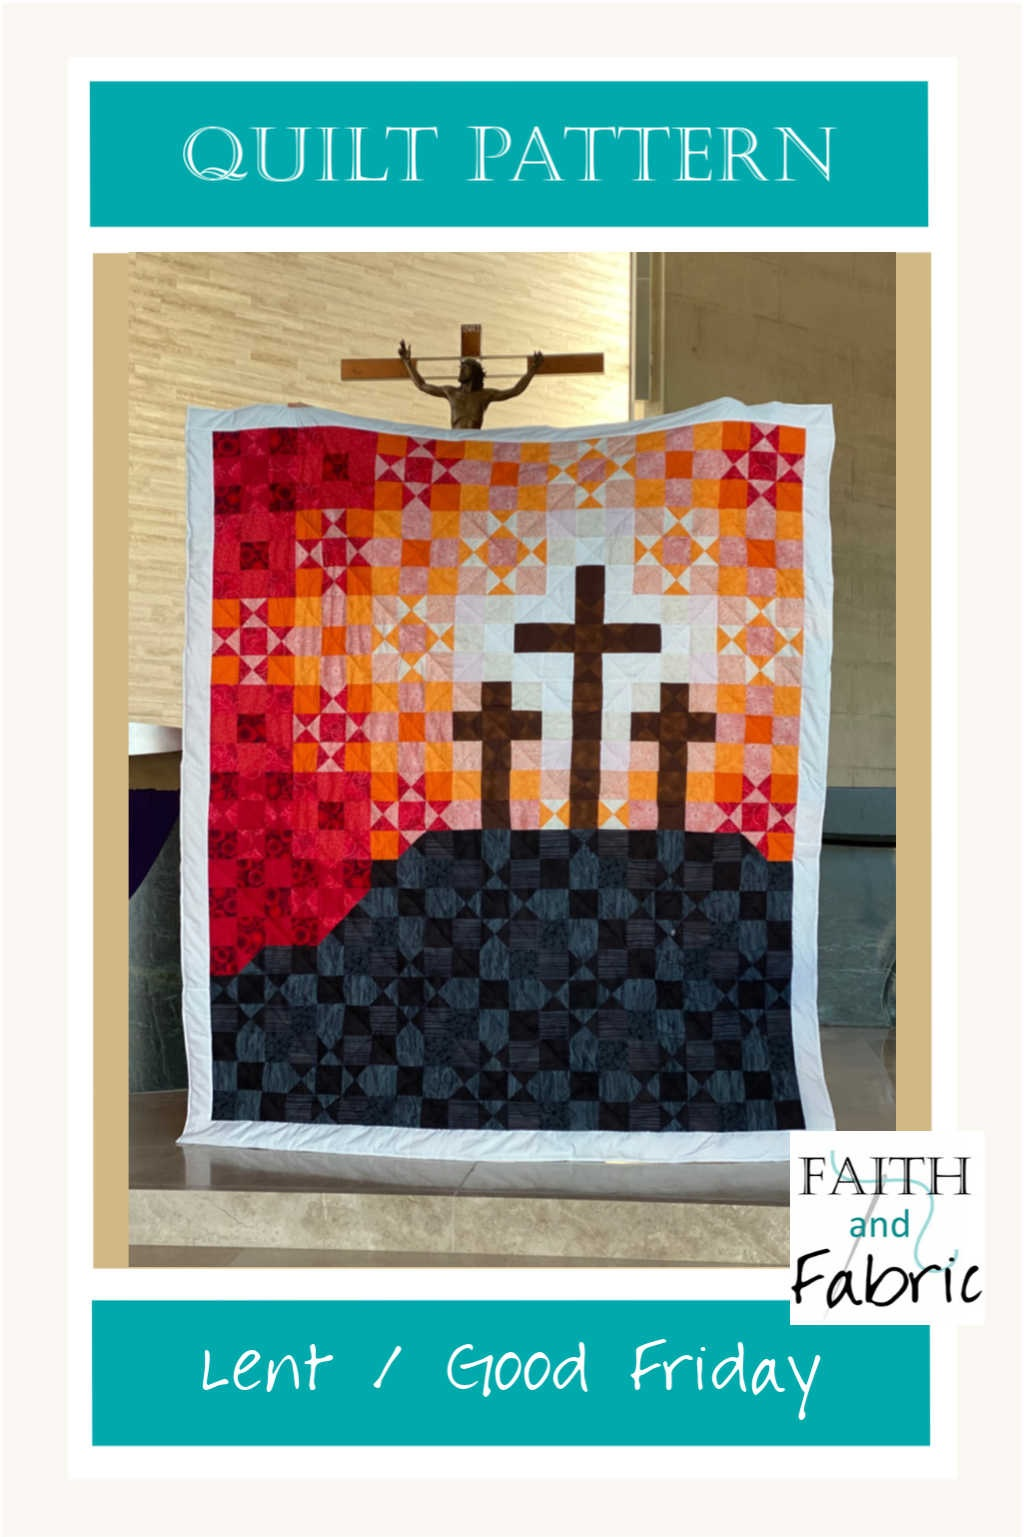 This beautiful Lent Quilt Pattern celebrates both the darkness and hope on that fateful Friday.